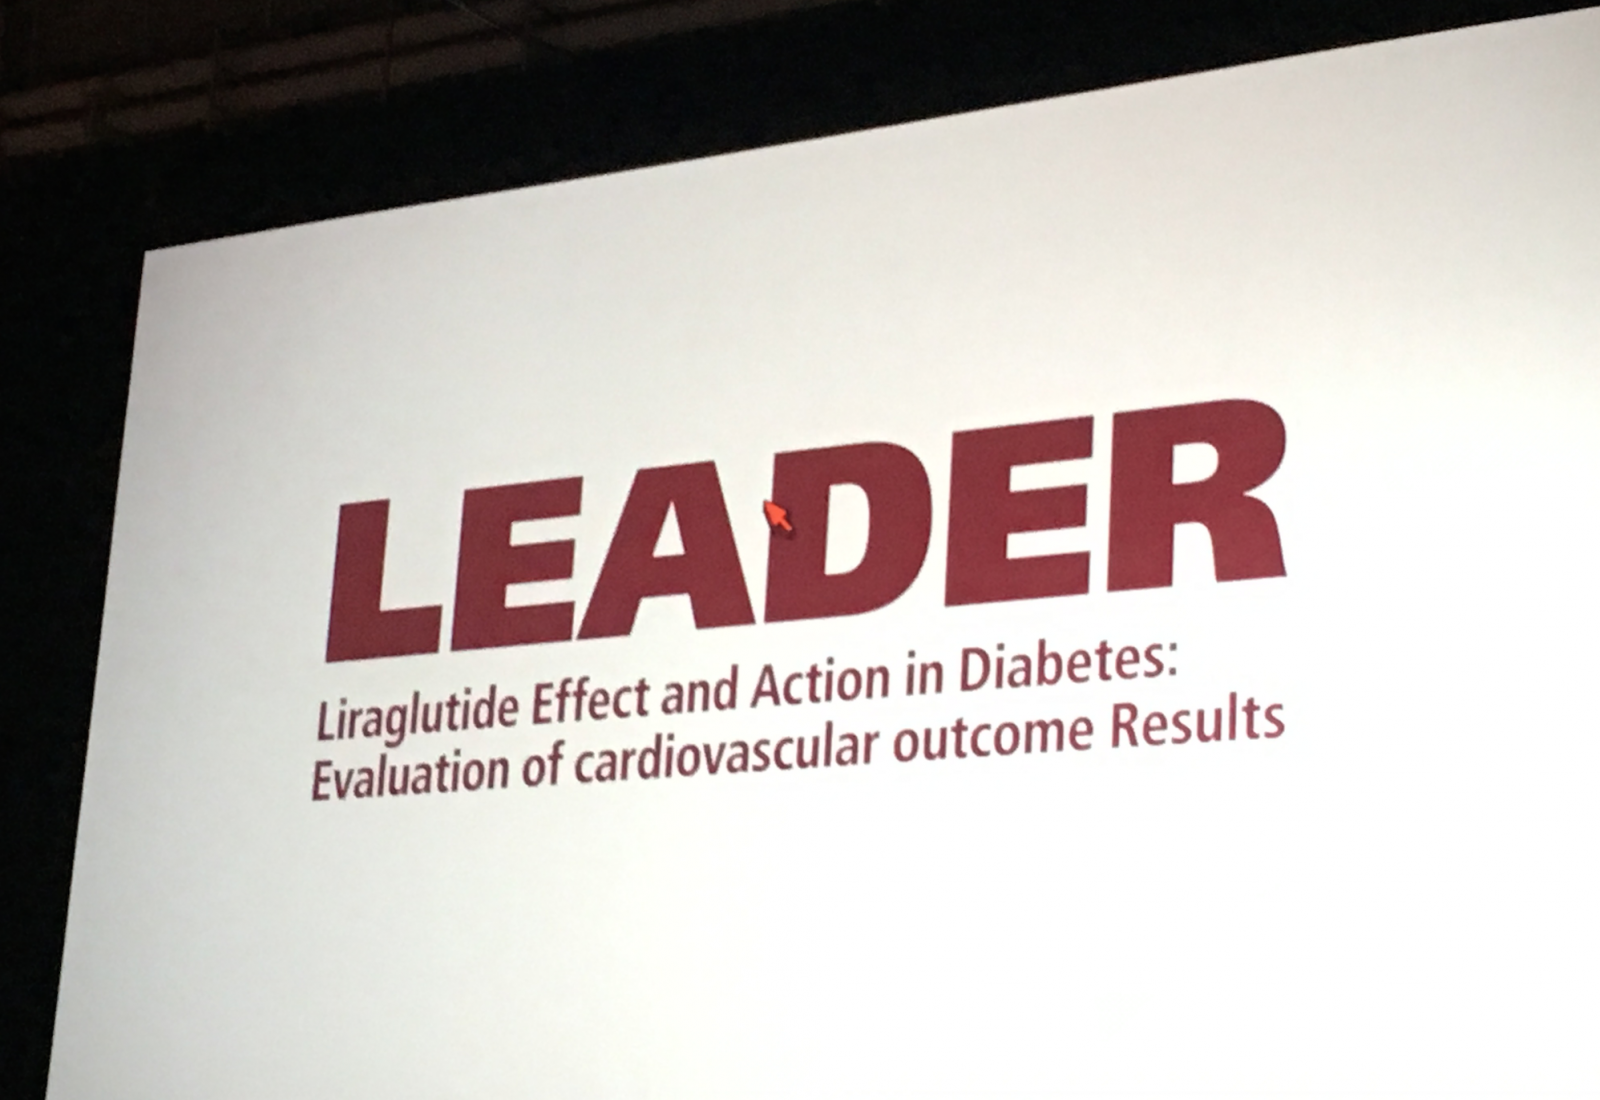 Glp 1 Victoza Reduces Cardiovascular Death By 22 In Type 2 Diabetes